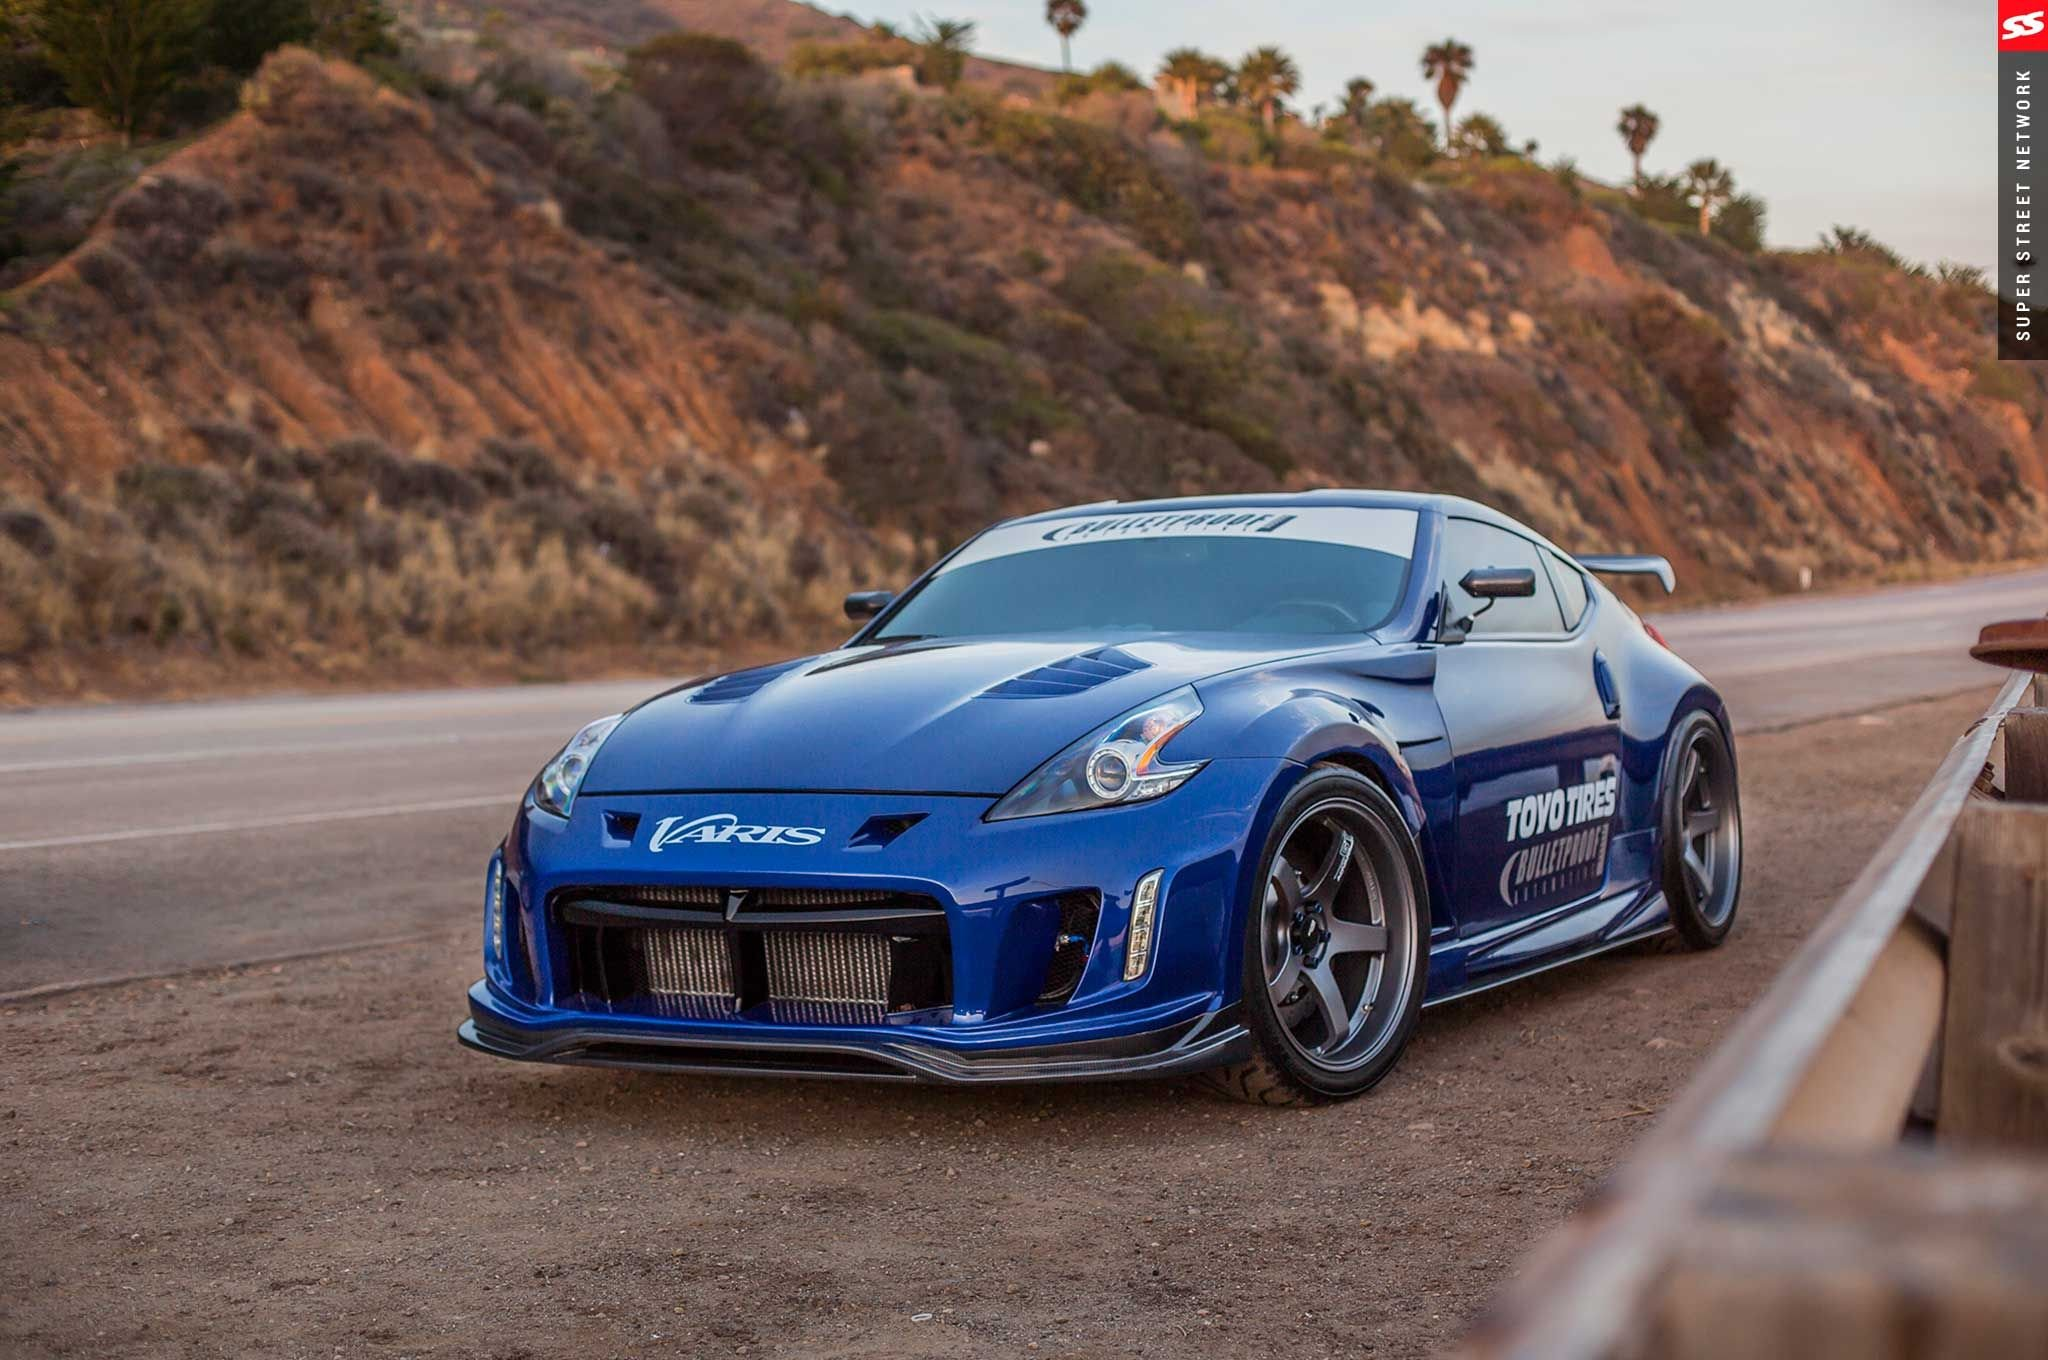 2009 nissan 370z coupe blue cars modified wallpaper 2048x1360 805050 wallpaperup. Black Bedroom Furniture Sets. Home Design Ideas